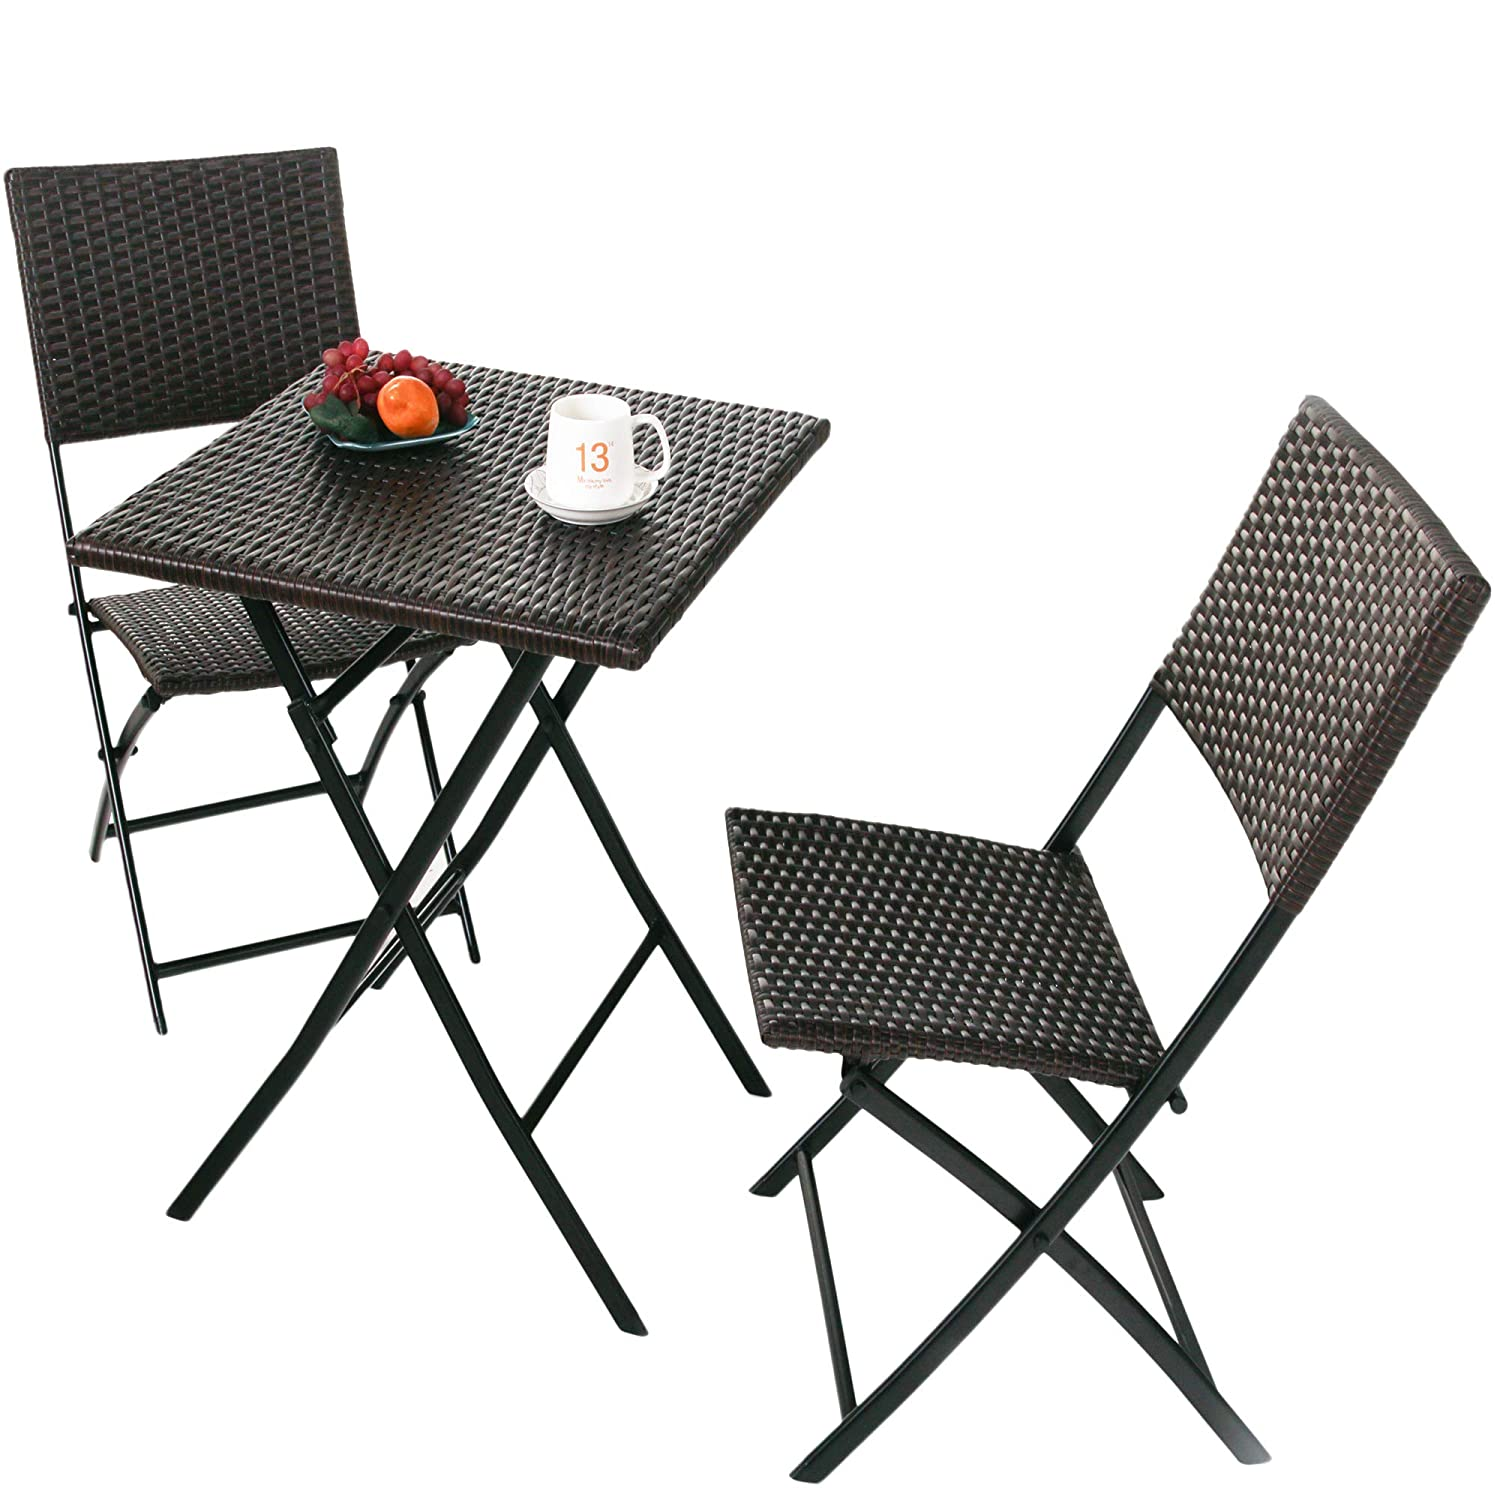 Grand patio parma rattan patio bistro set weather resistant outdoor furniture sets with rust proof steel frames 3 piece bistro set of foldable garden